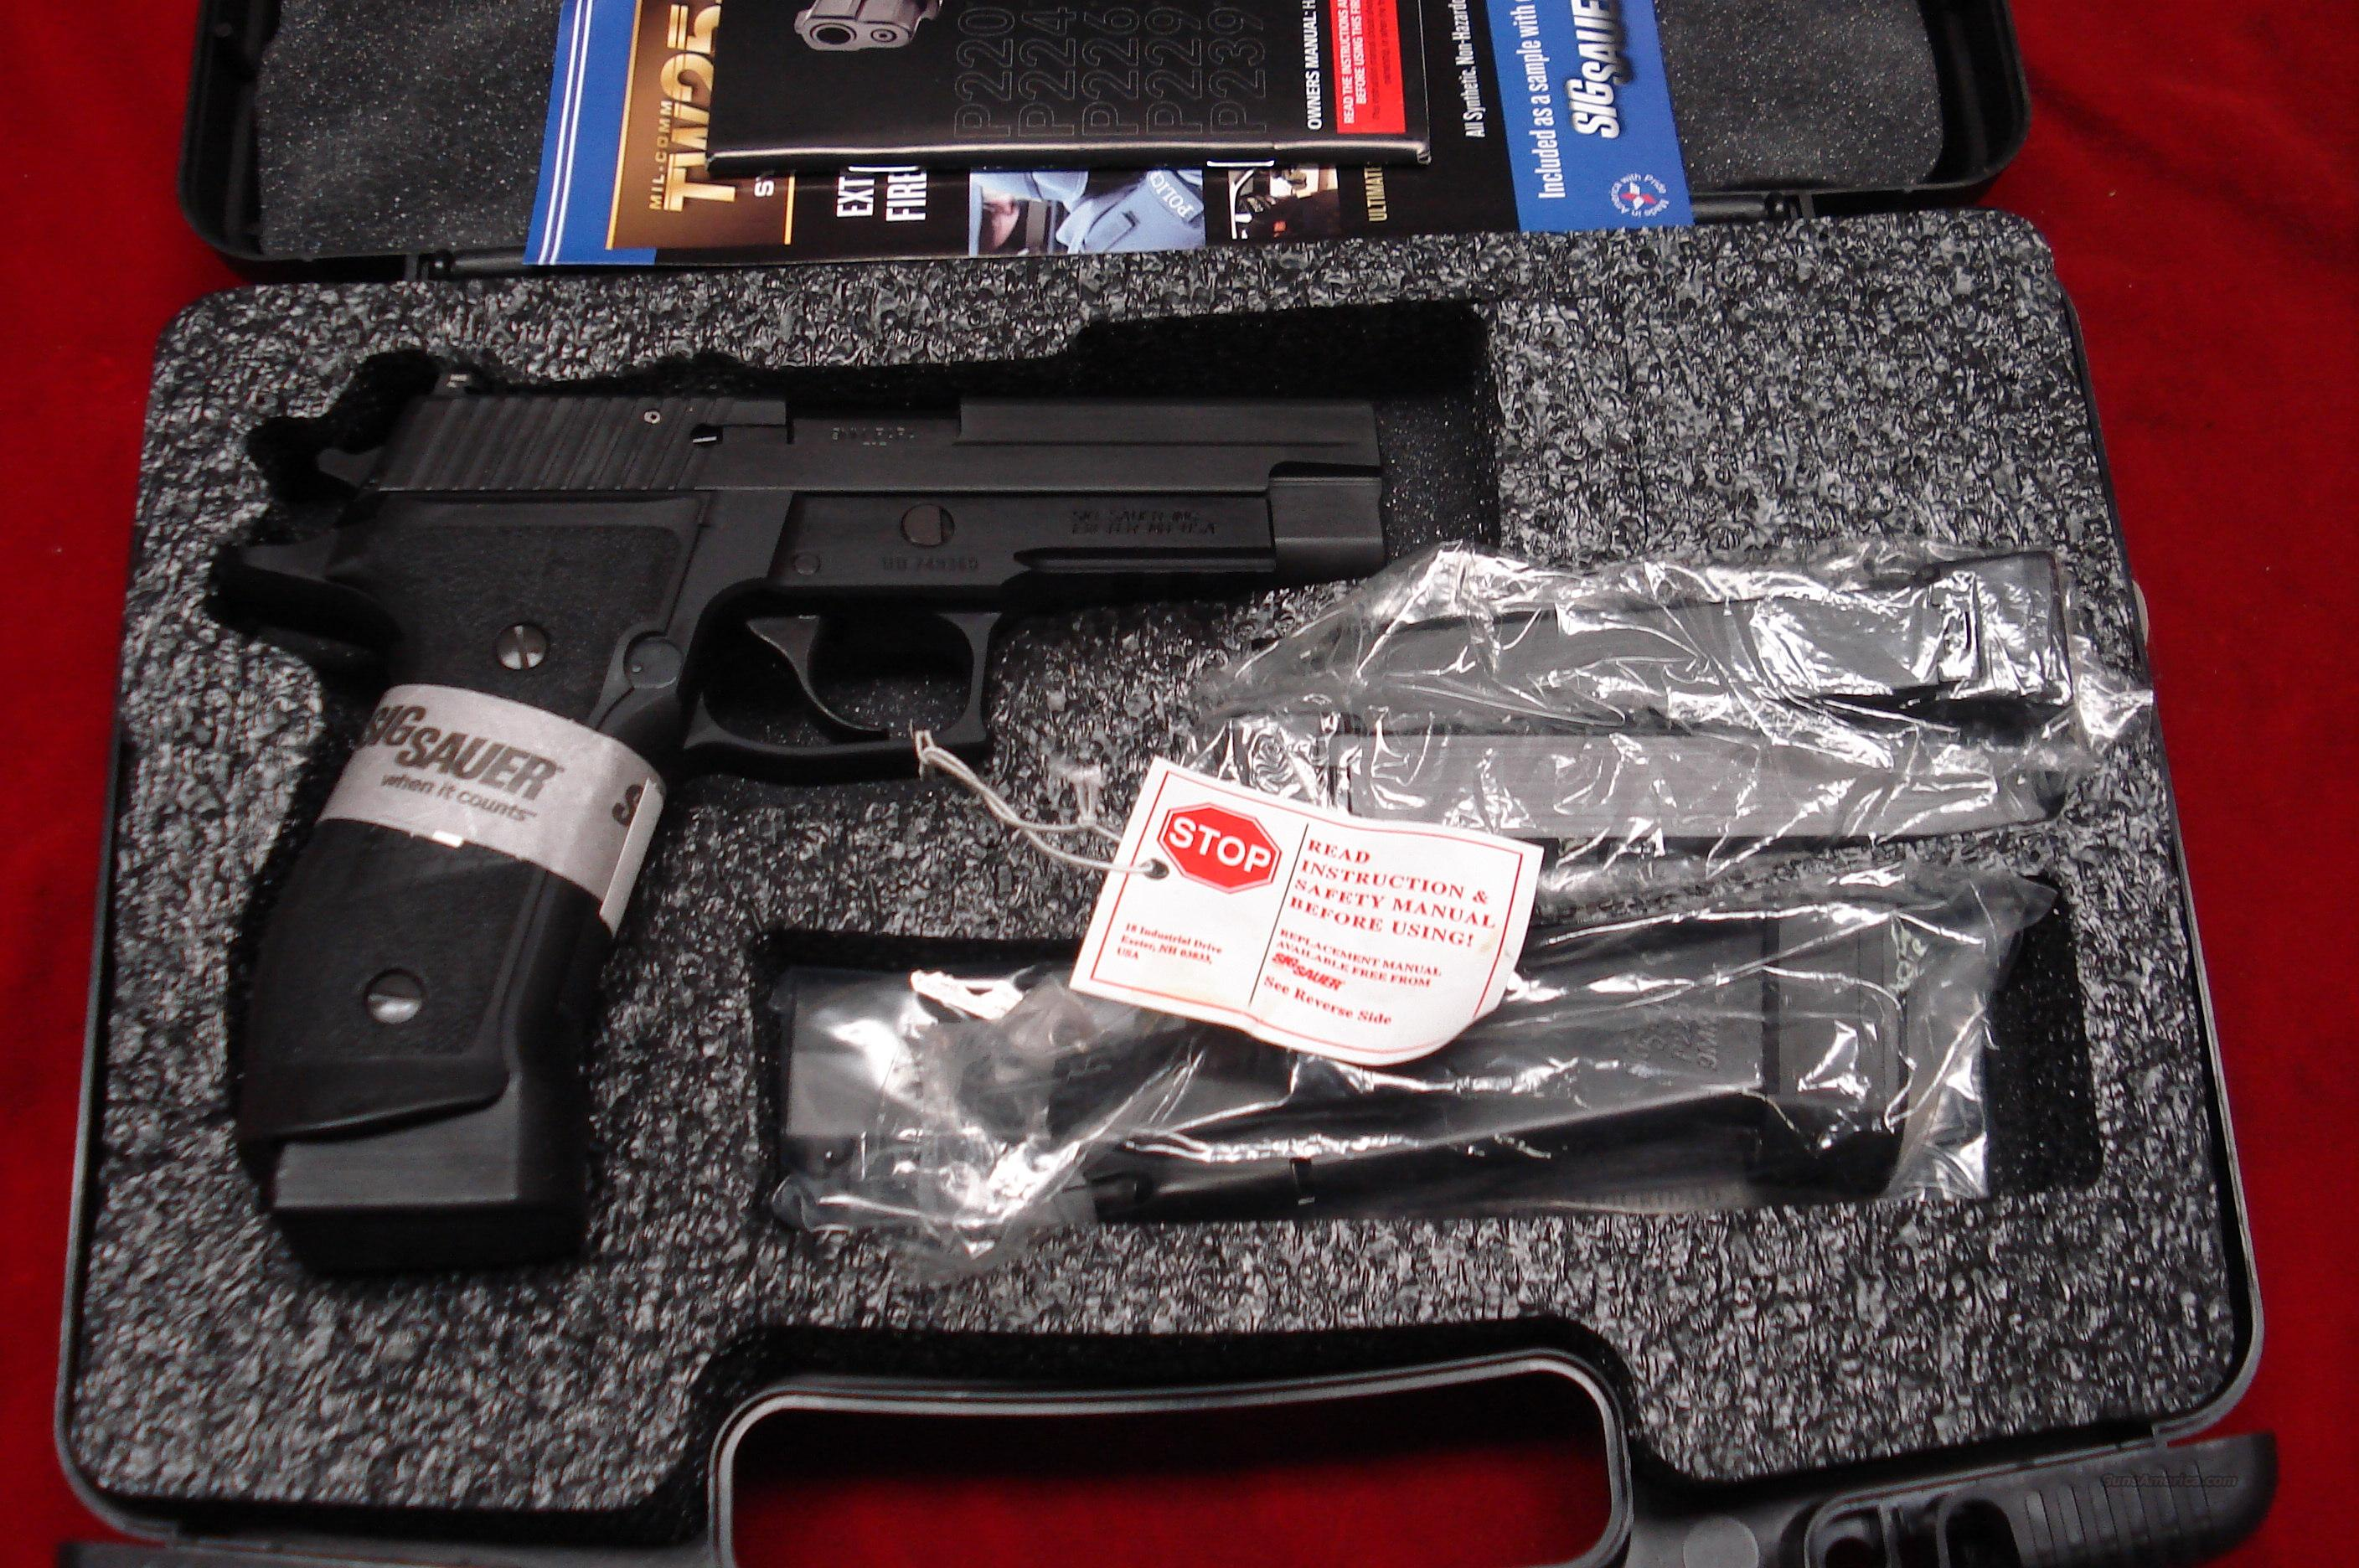 SIG SAUER P226 TAC OPS 9MM WITH FOUR 20 ROUND  MAGAZINES NEW  Guns > Pistols > Sig - Sauer/Sigarms Pistols > P226